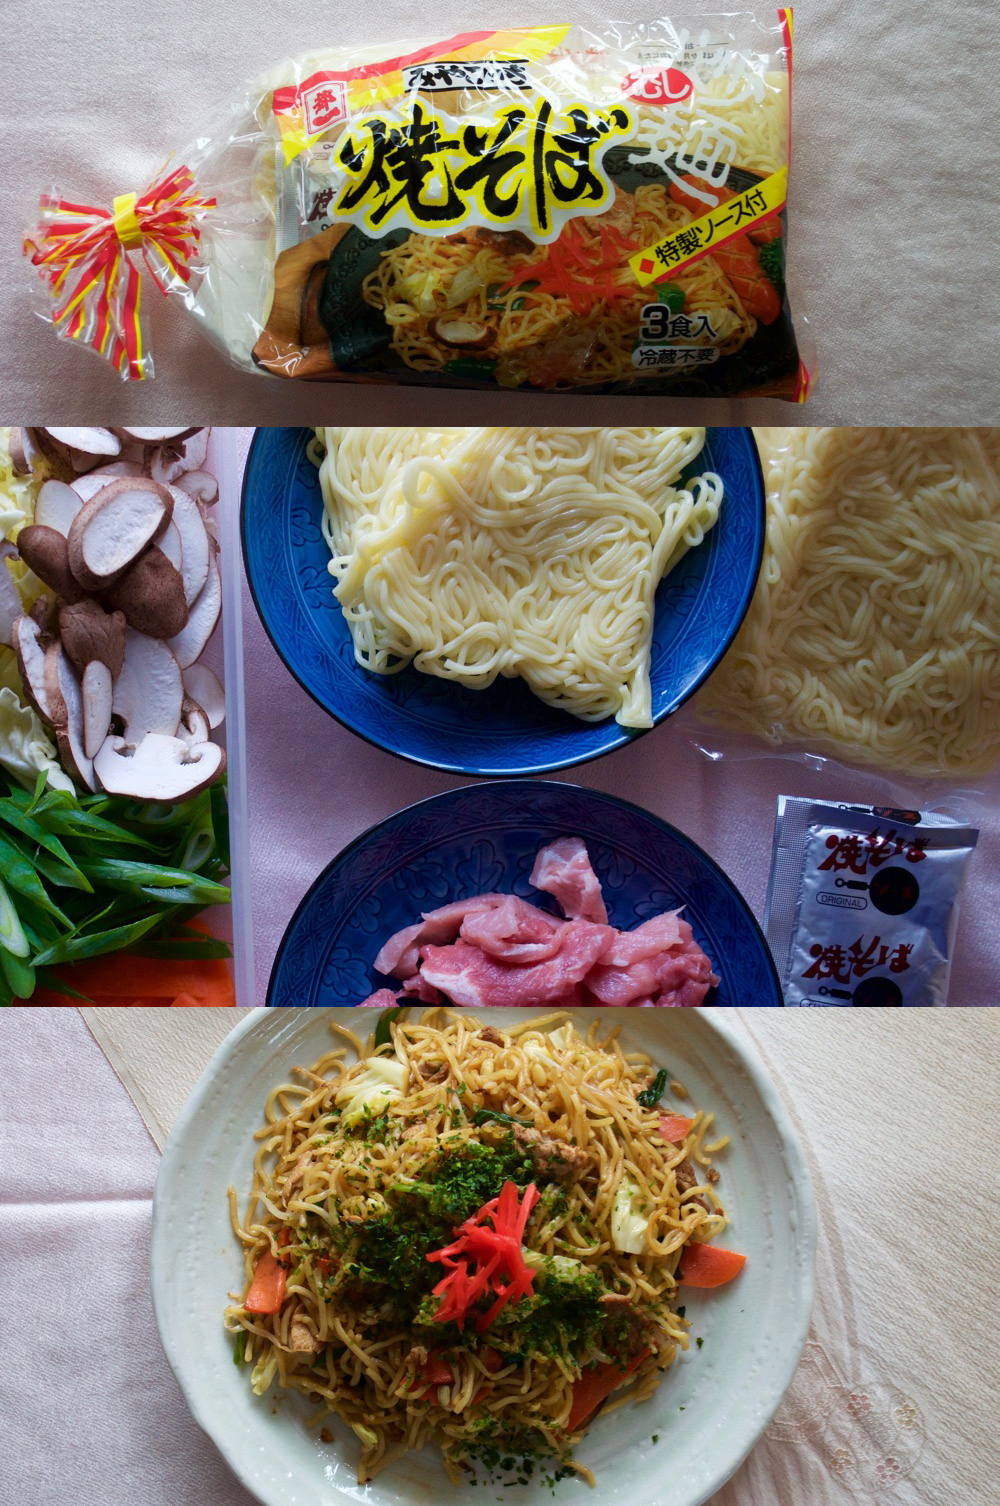 Yakisoba made from yakisoba packet